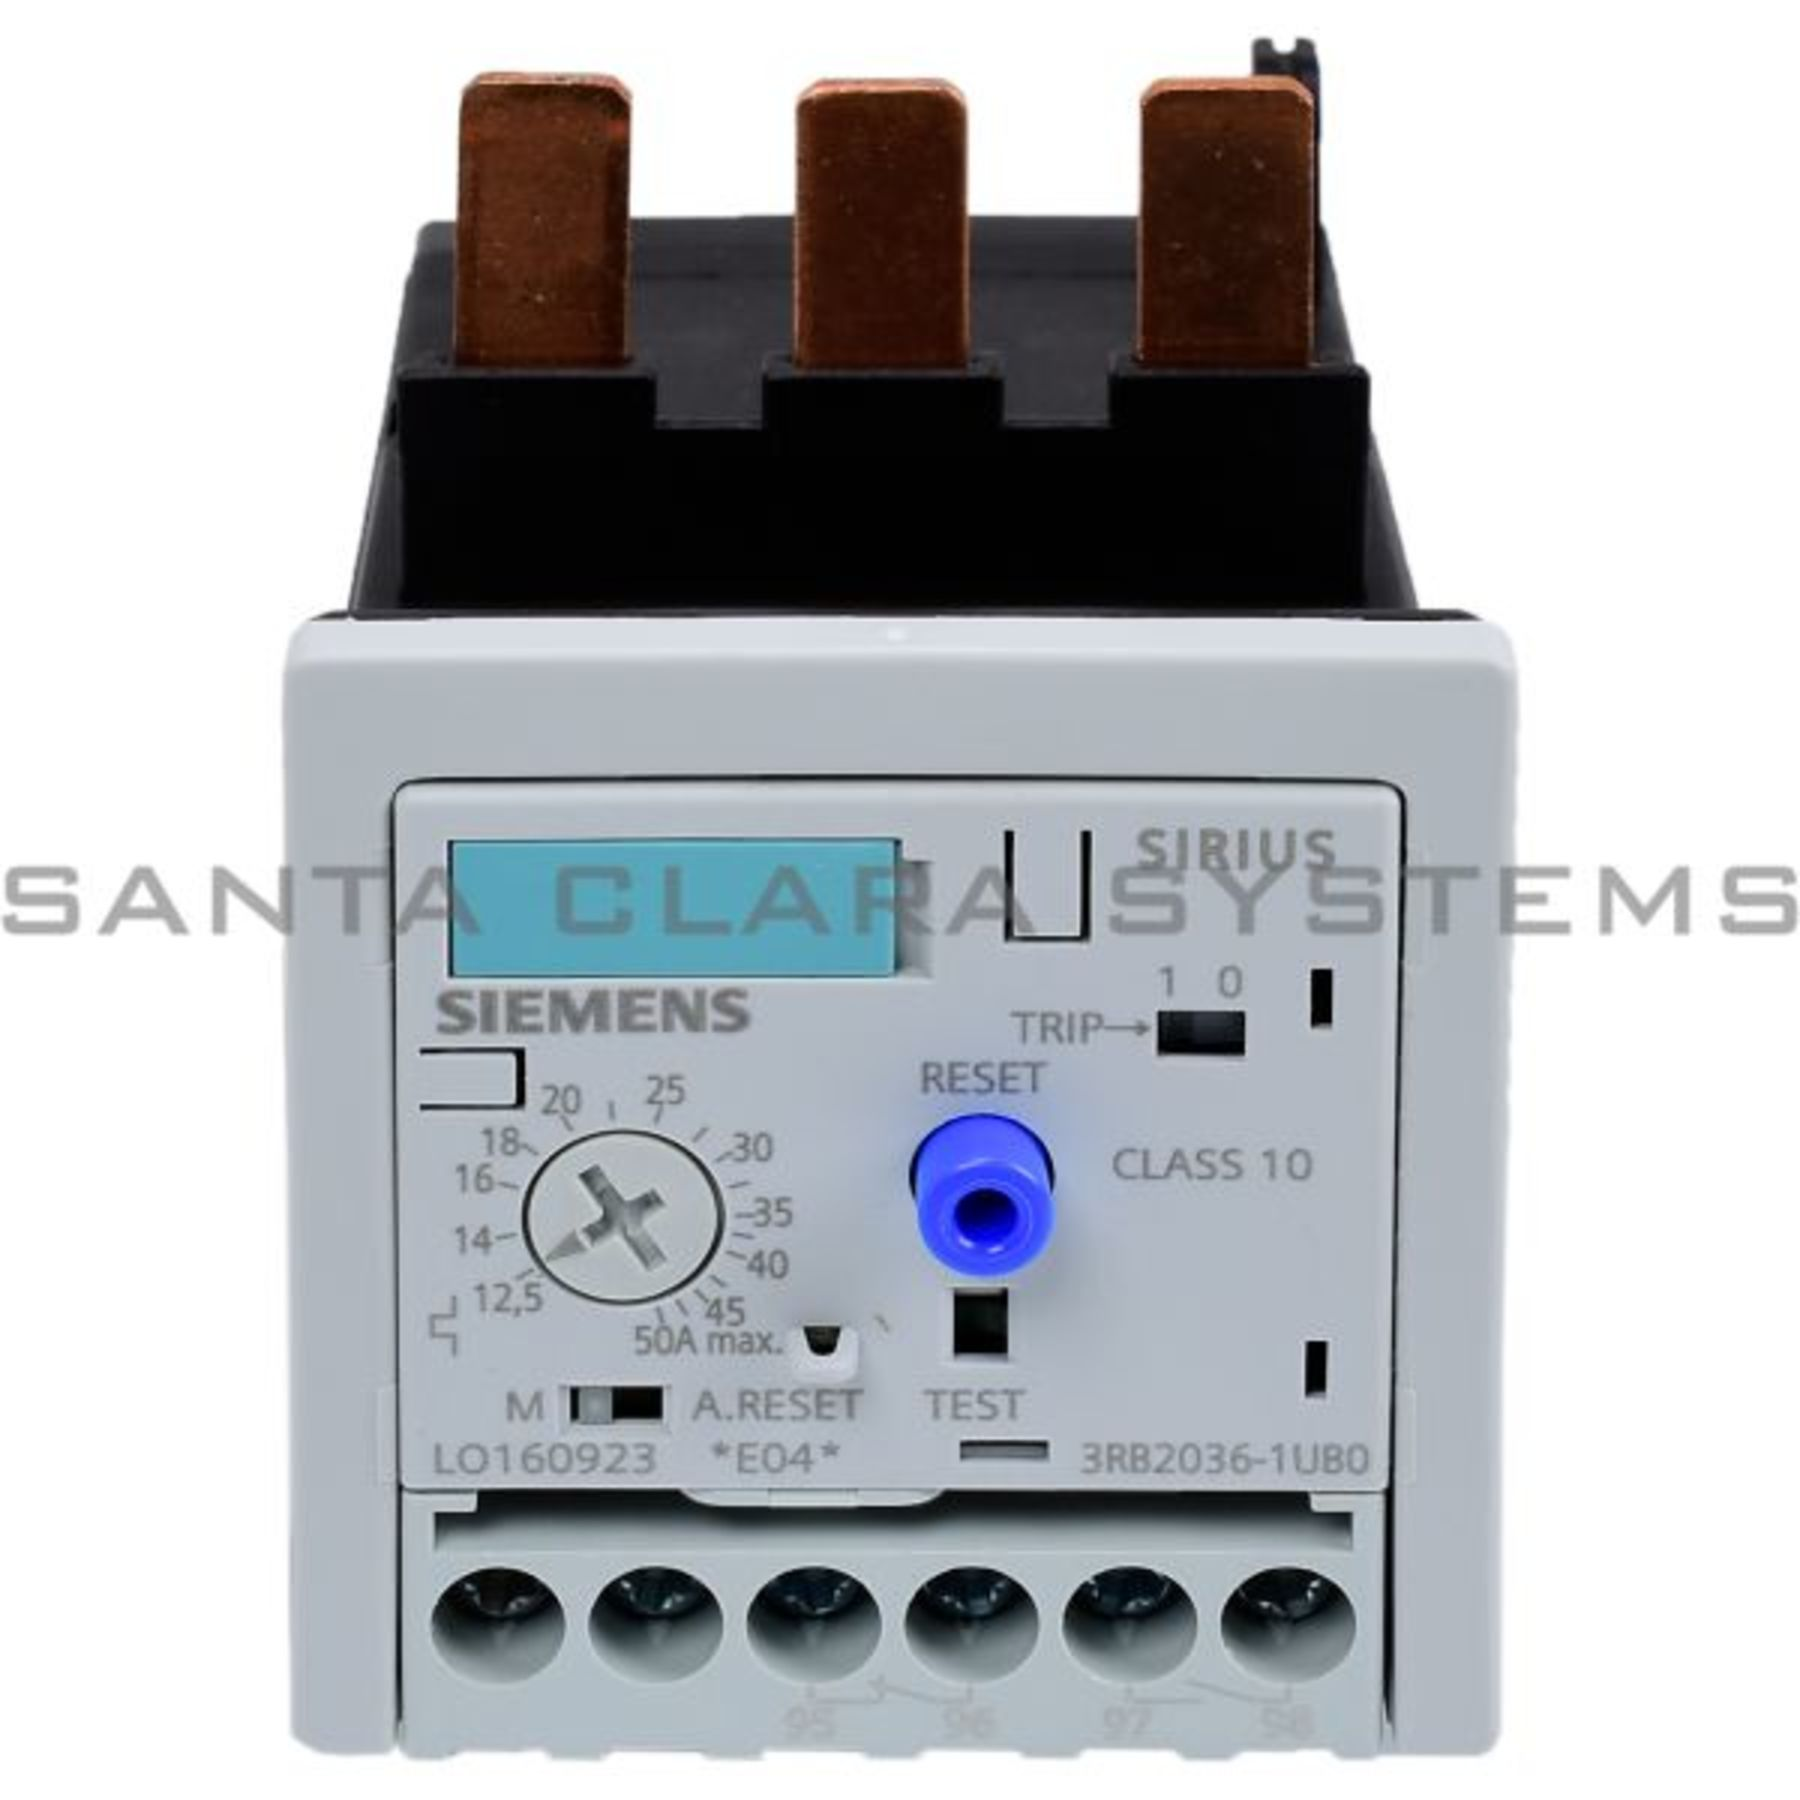 3RB2036-1UB0 Siemens In stock and ready to ship - Santa